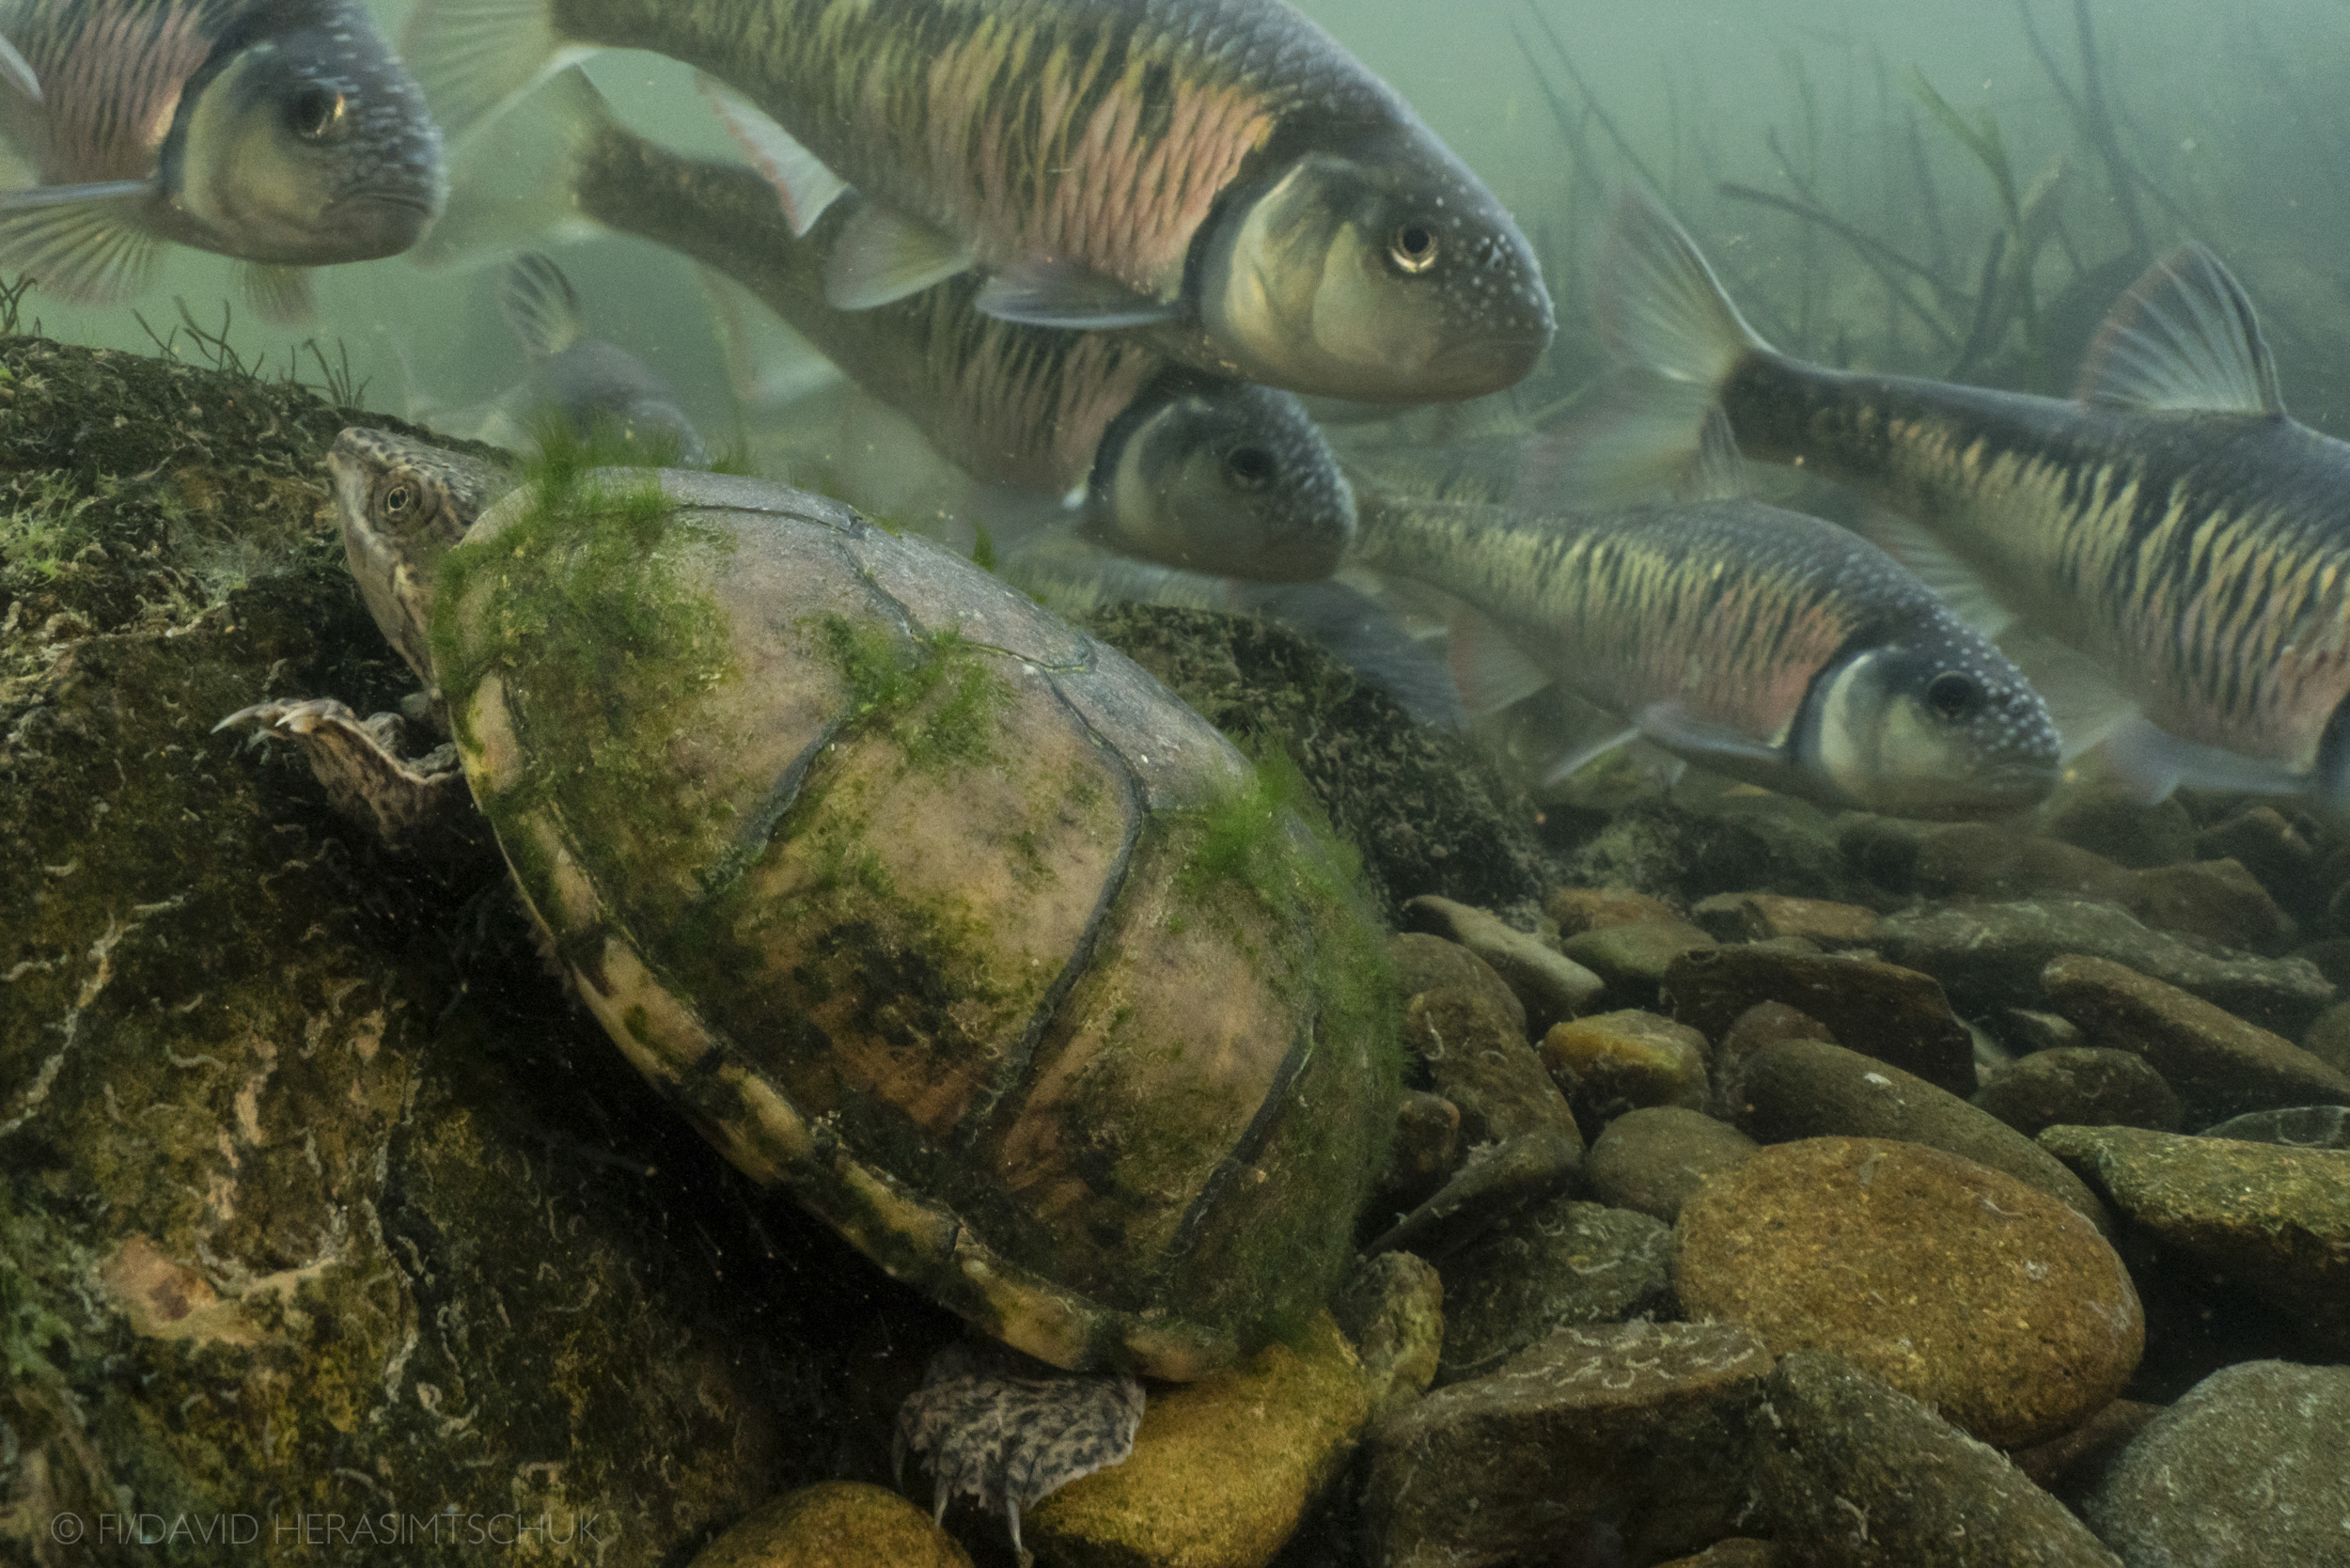 14 Striped Shiners and Musk Turtle, Tennessee.jpg